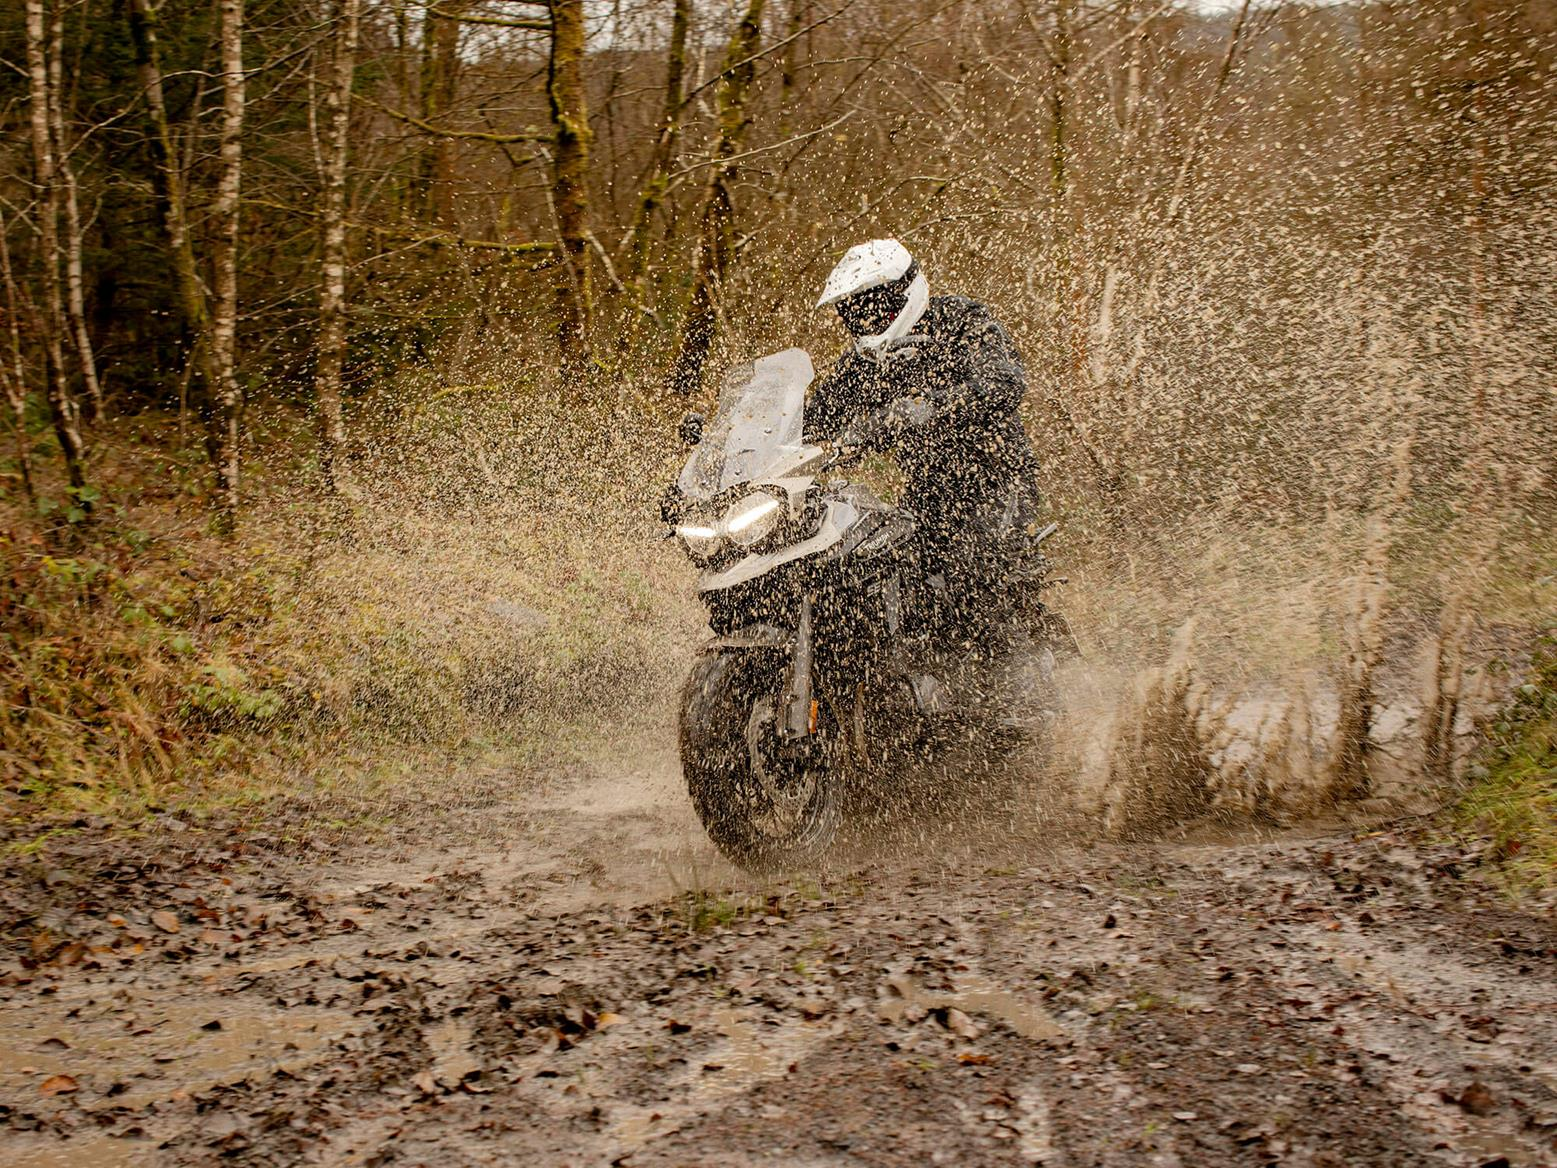 The Desert Edition Triumph gets muddy in a forest